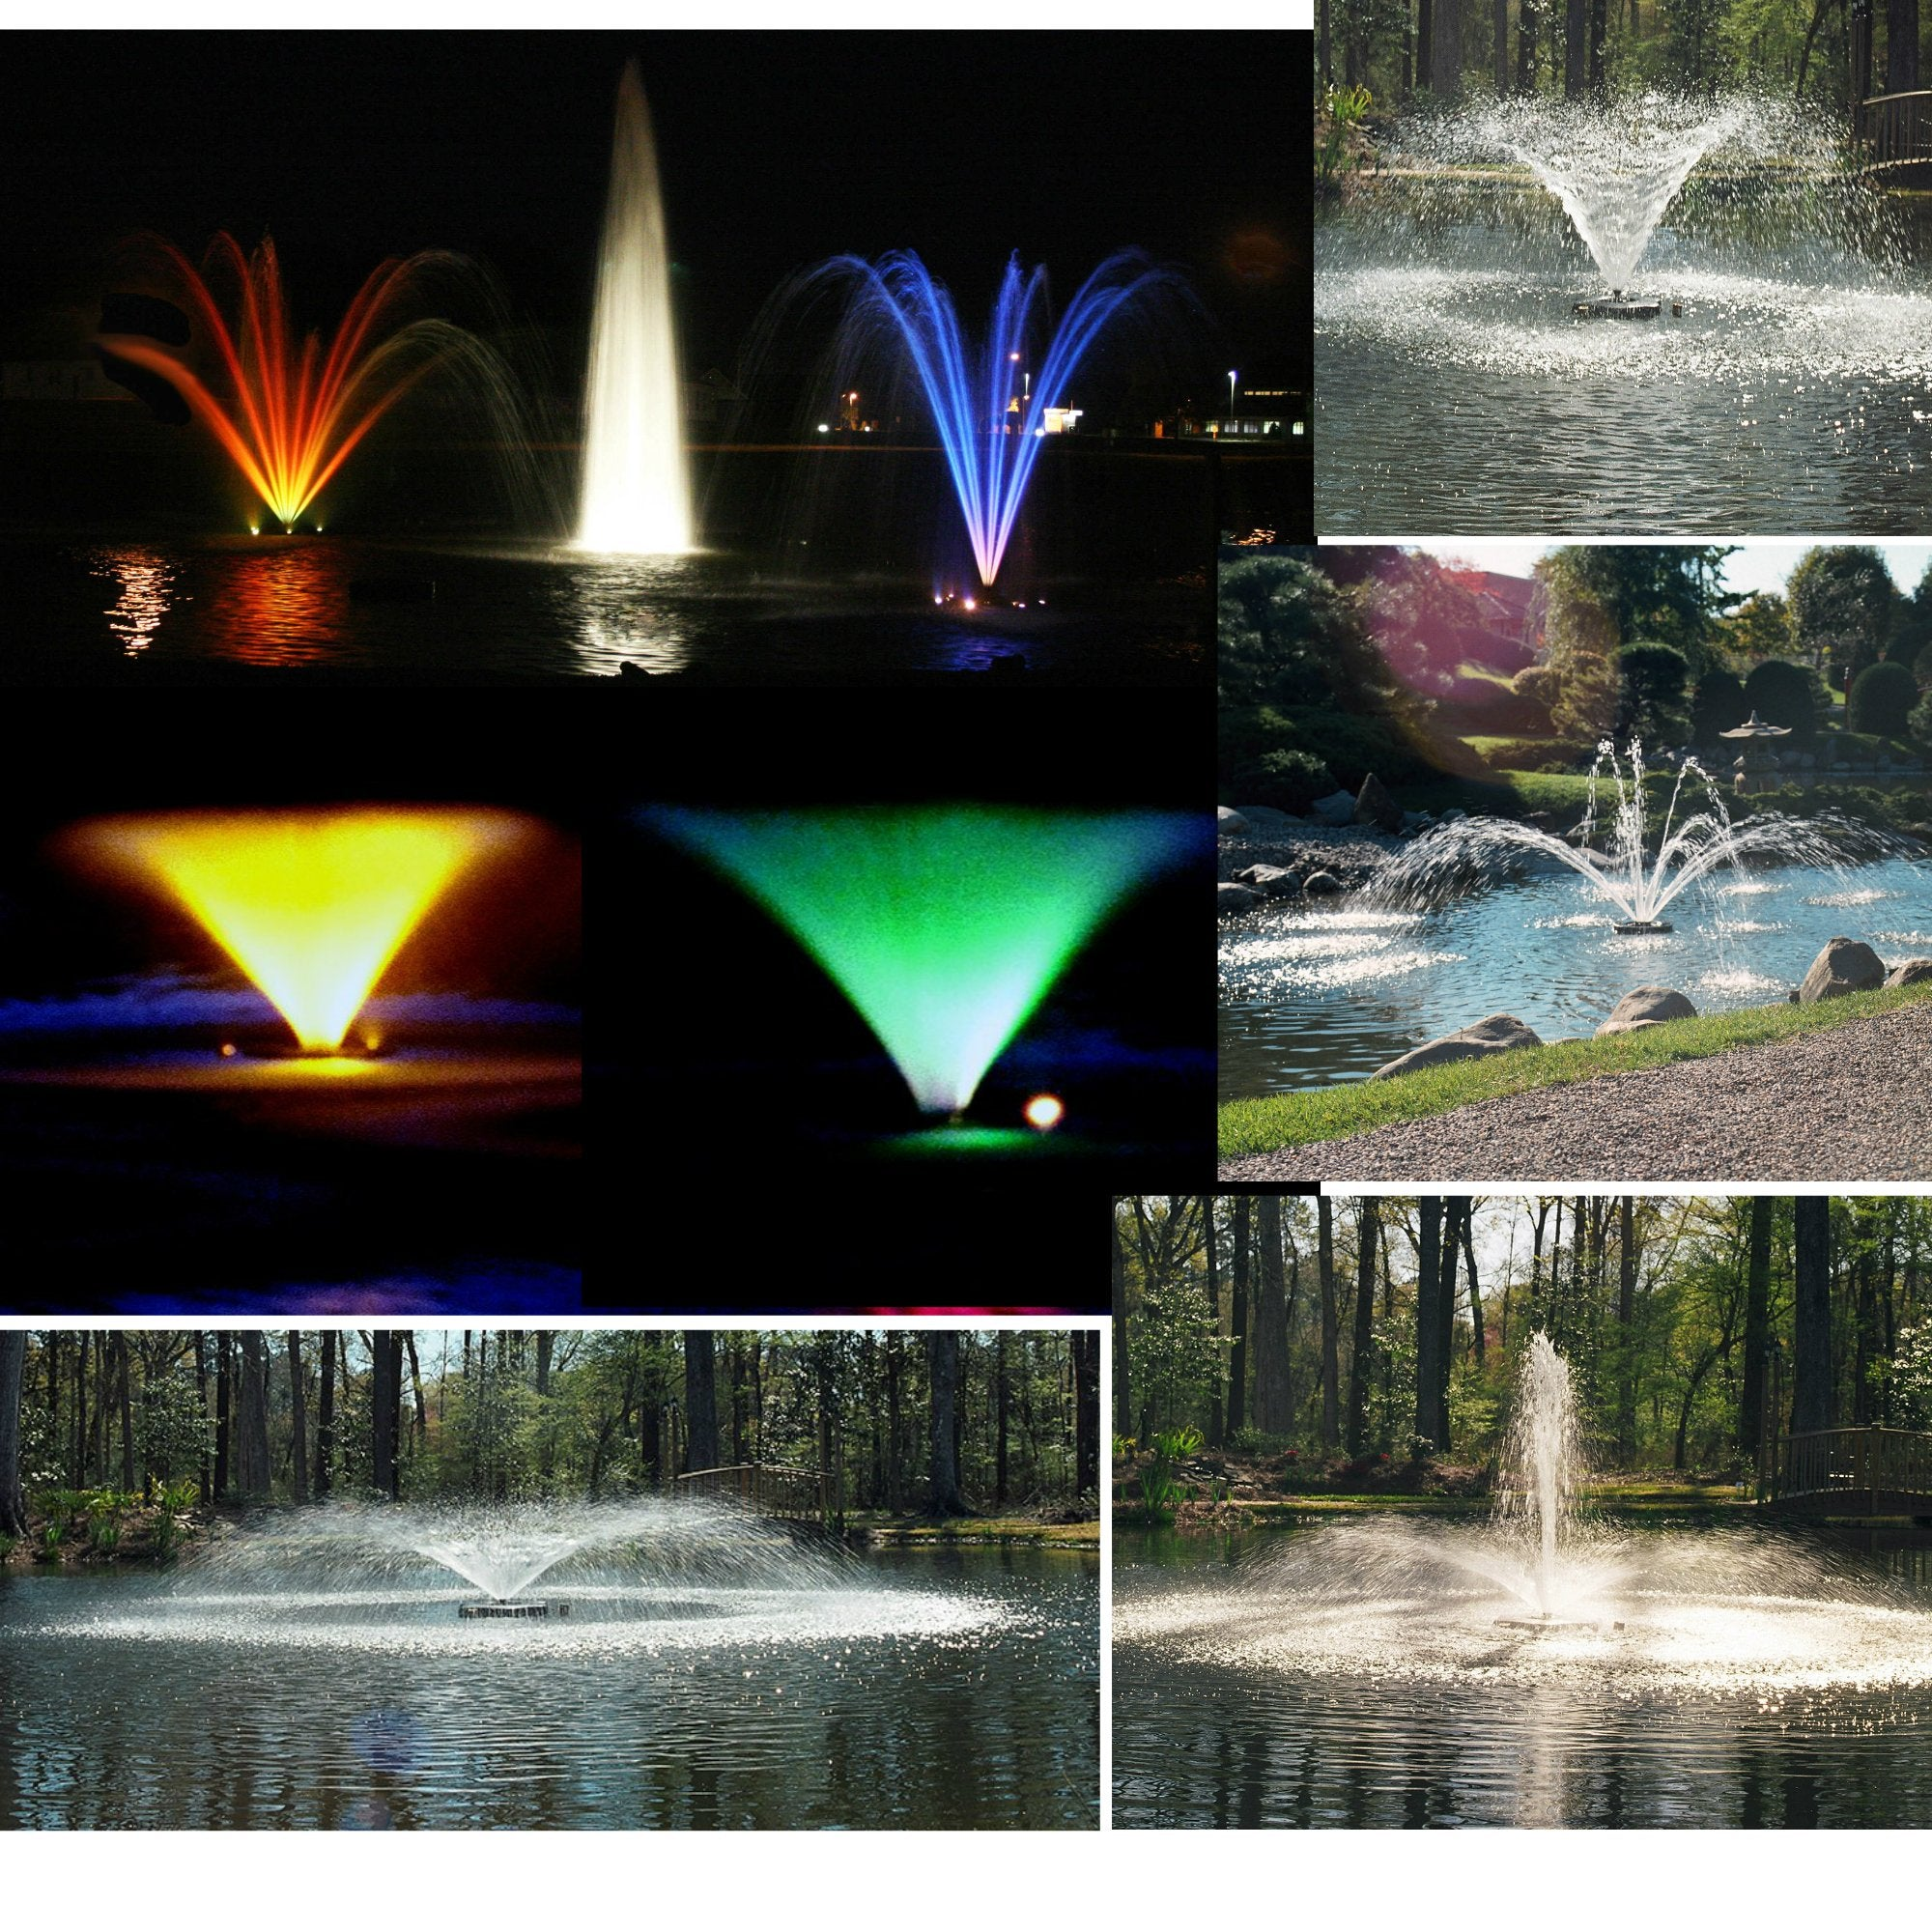 Kasco Marine Fountain with LIGHTS - 3400JF100 3/4 HP 120V Aerating / Decorative Floating Lighted Fountain - 100ft power cord